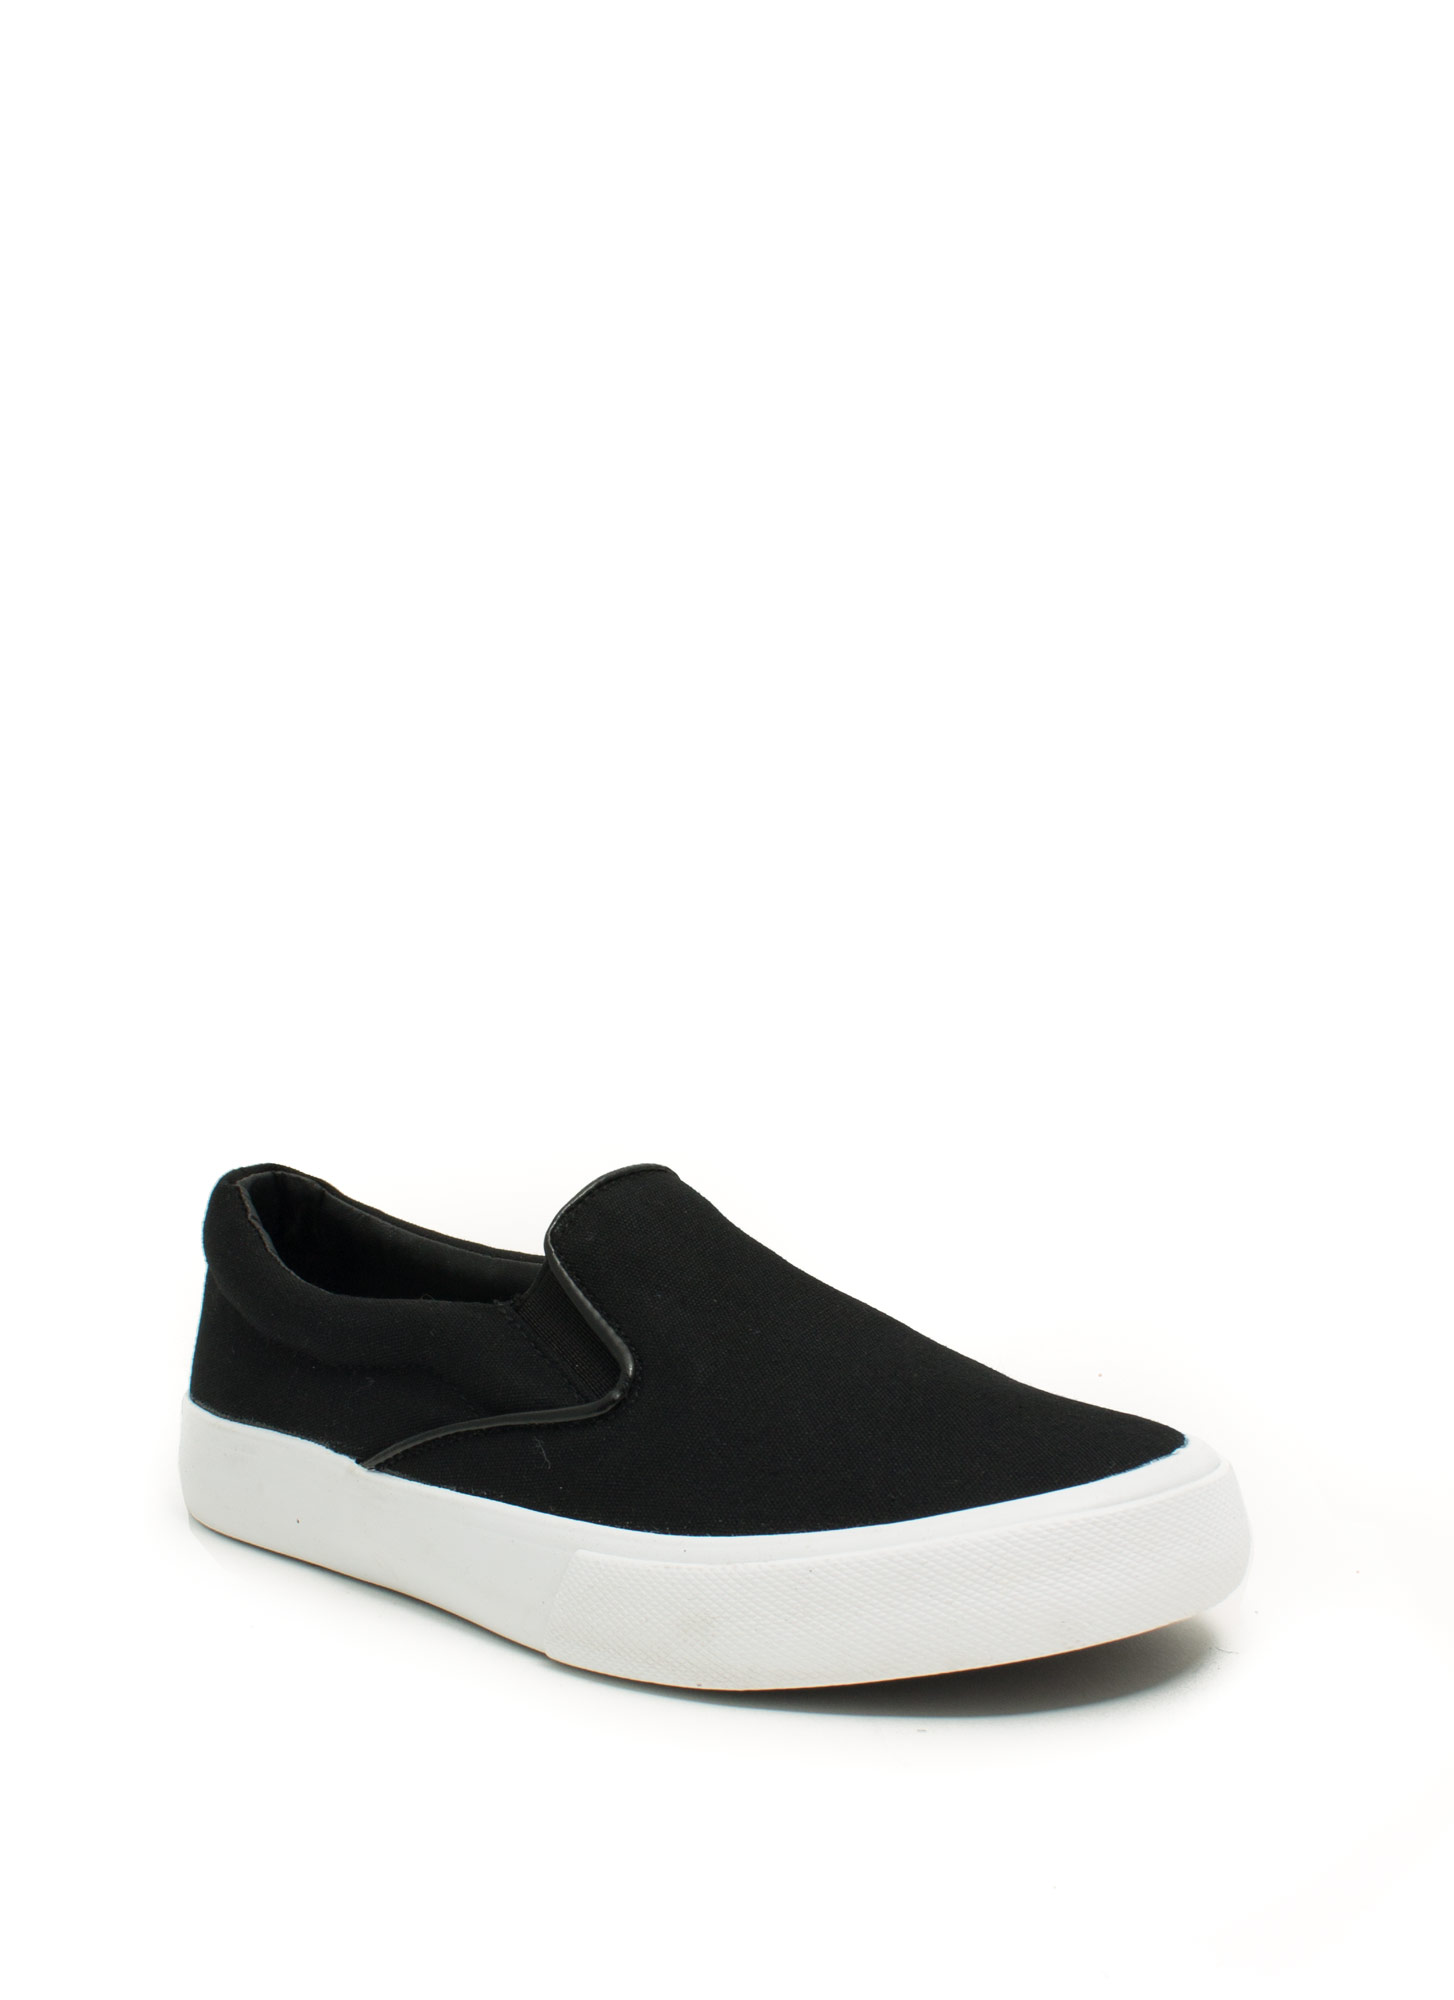 Pipe Down Slip-On Sneakers BLACKWHITE